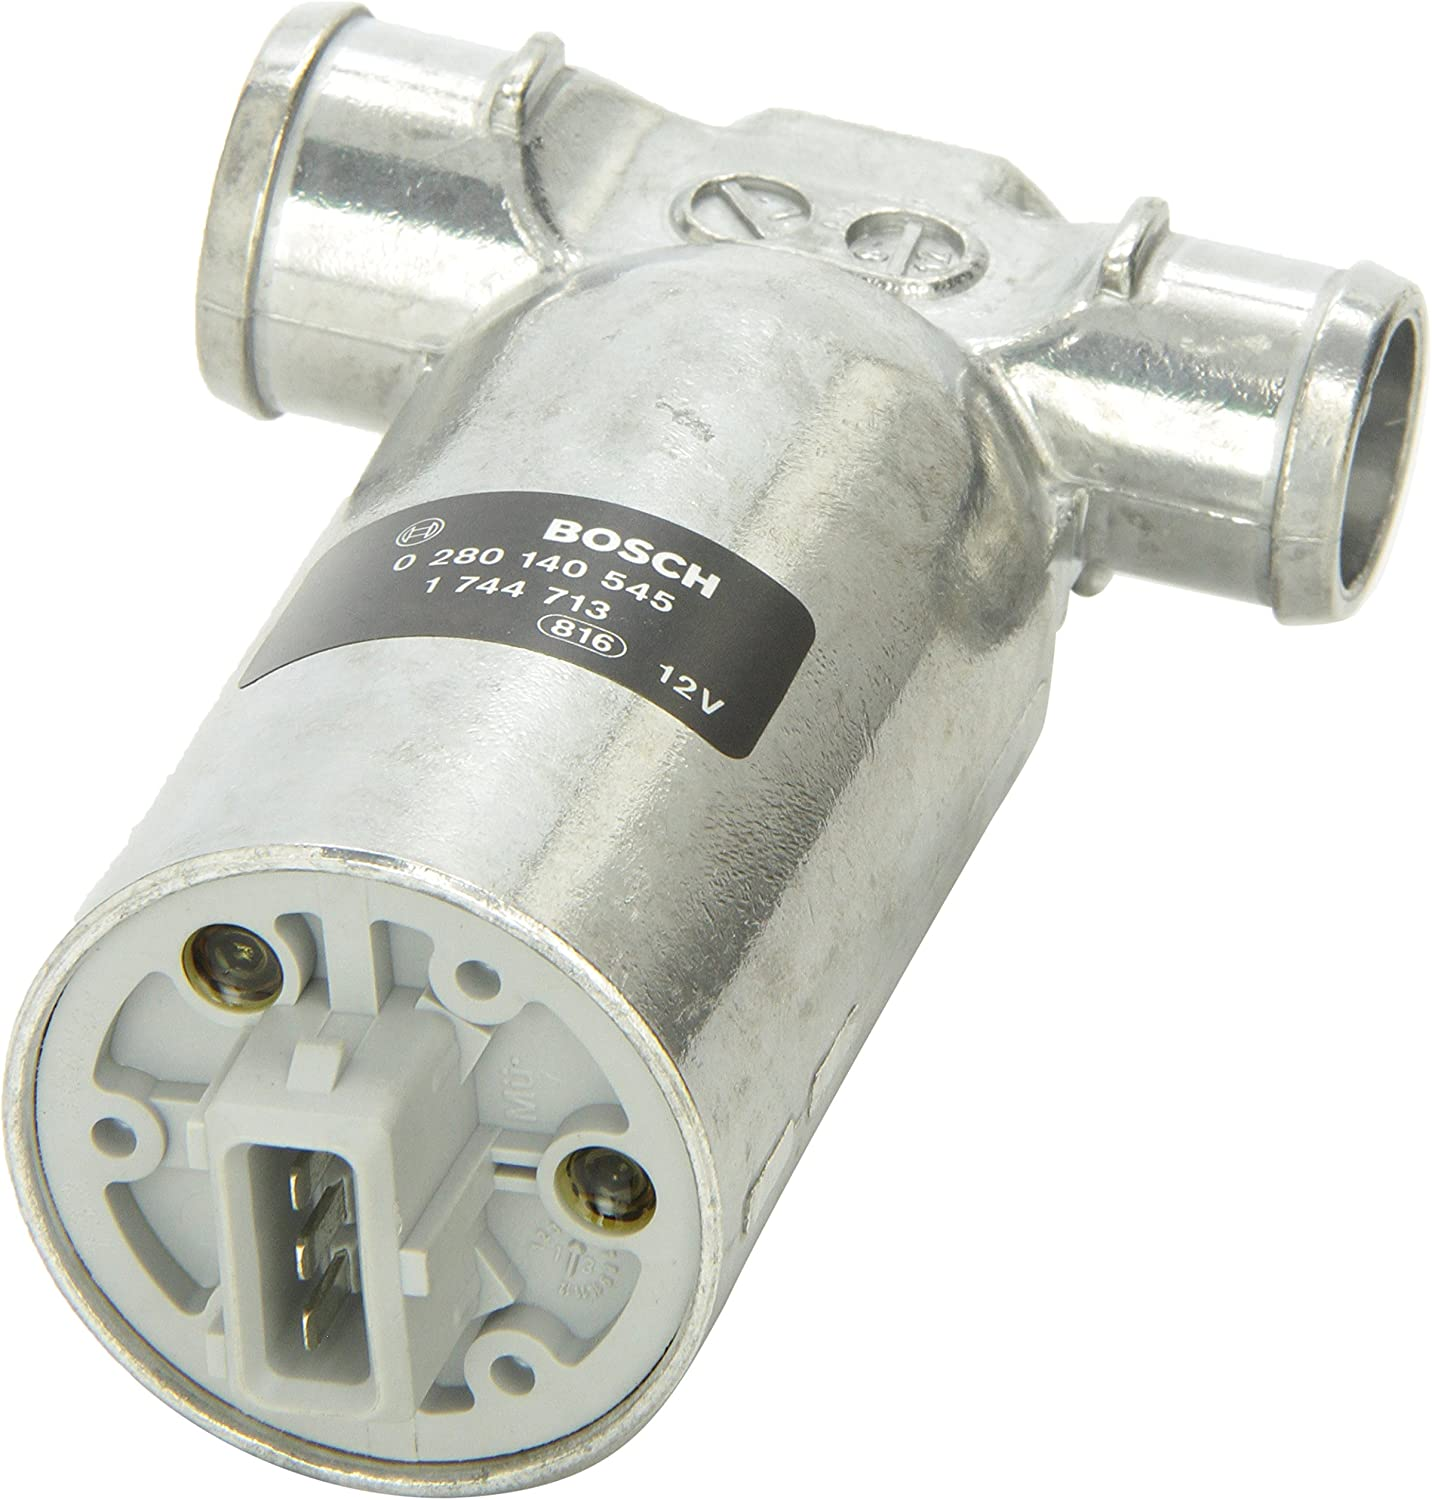 0280140532 Next working day to UK BOSCH IDLE CONTROL VALVE